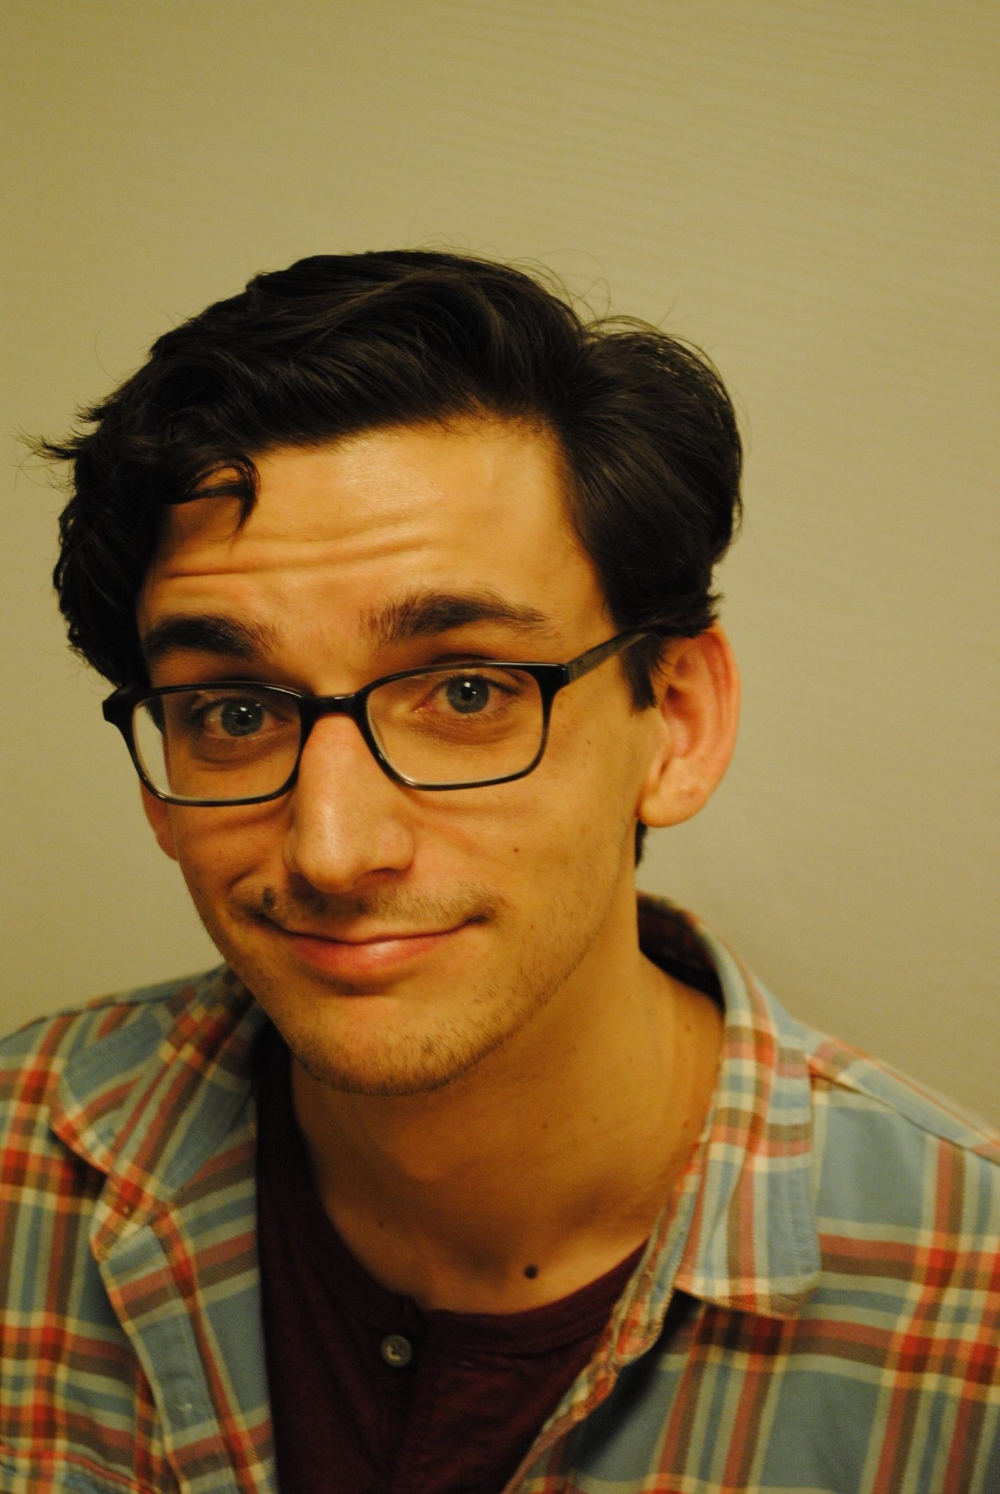 John Goodman - Company MemberJohn Goodman is a performer and web developer currently living in Brooklyn. His performing background is mostly comedy and improv, and he's worked with the Brouhaha Theatre Project since the beginning on R&D: a nightmare in three flowcharts.